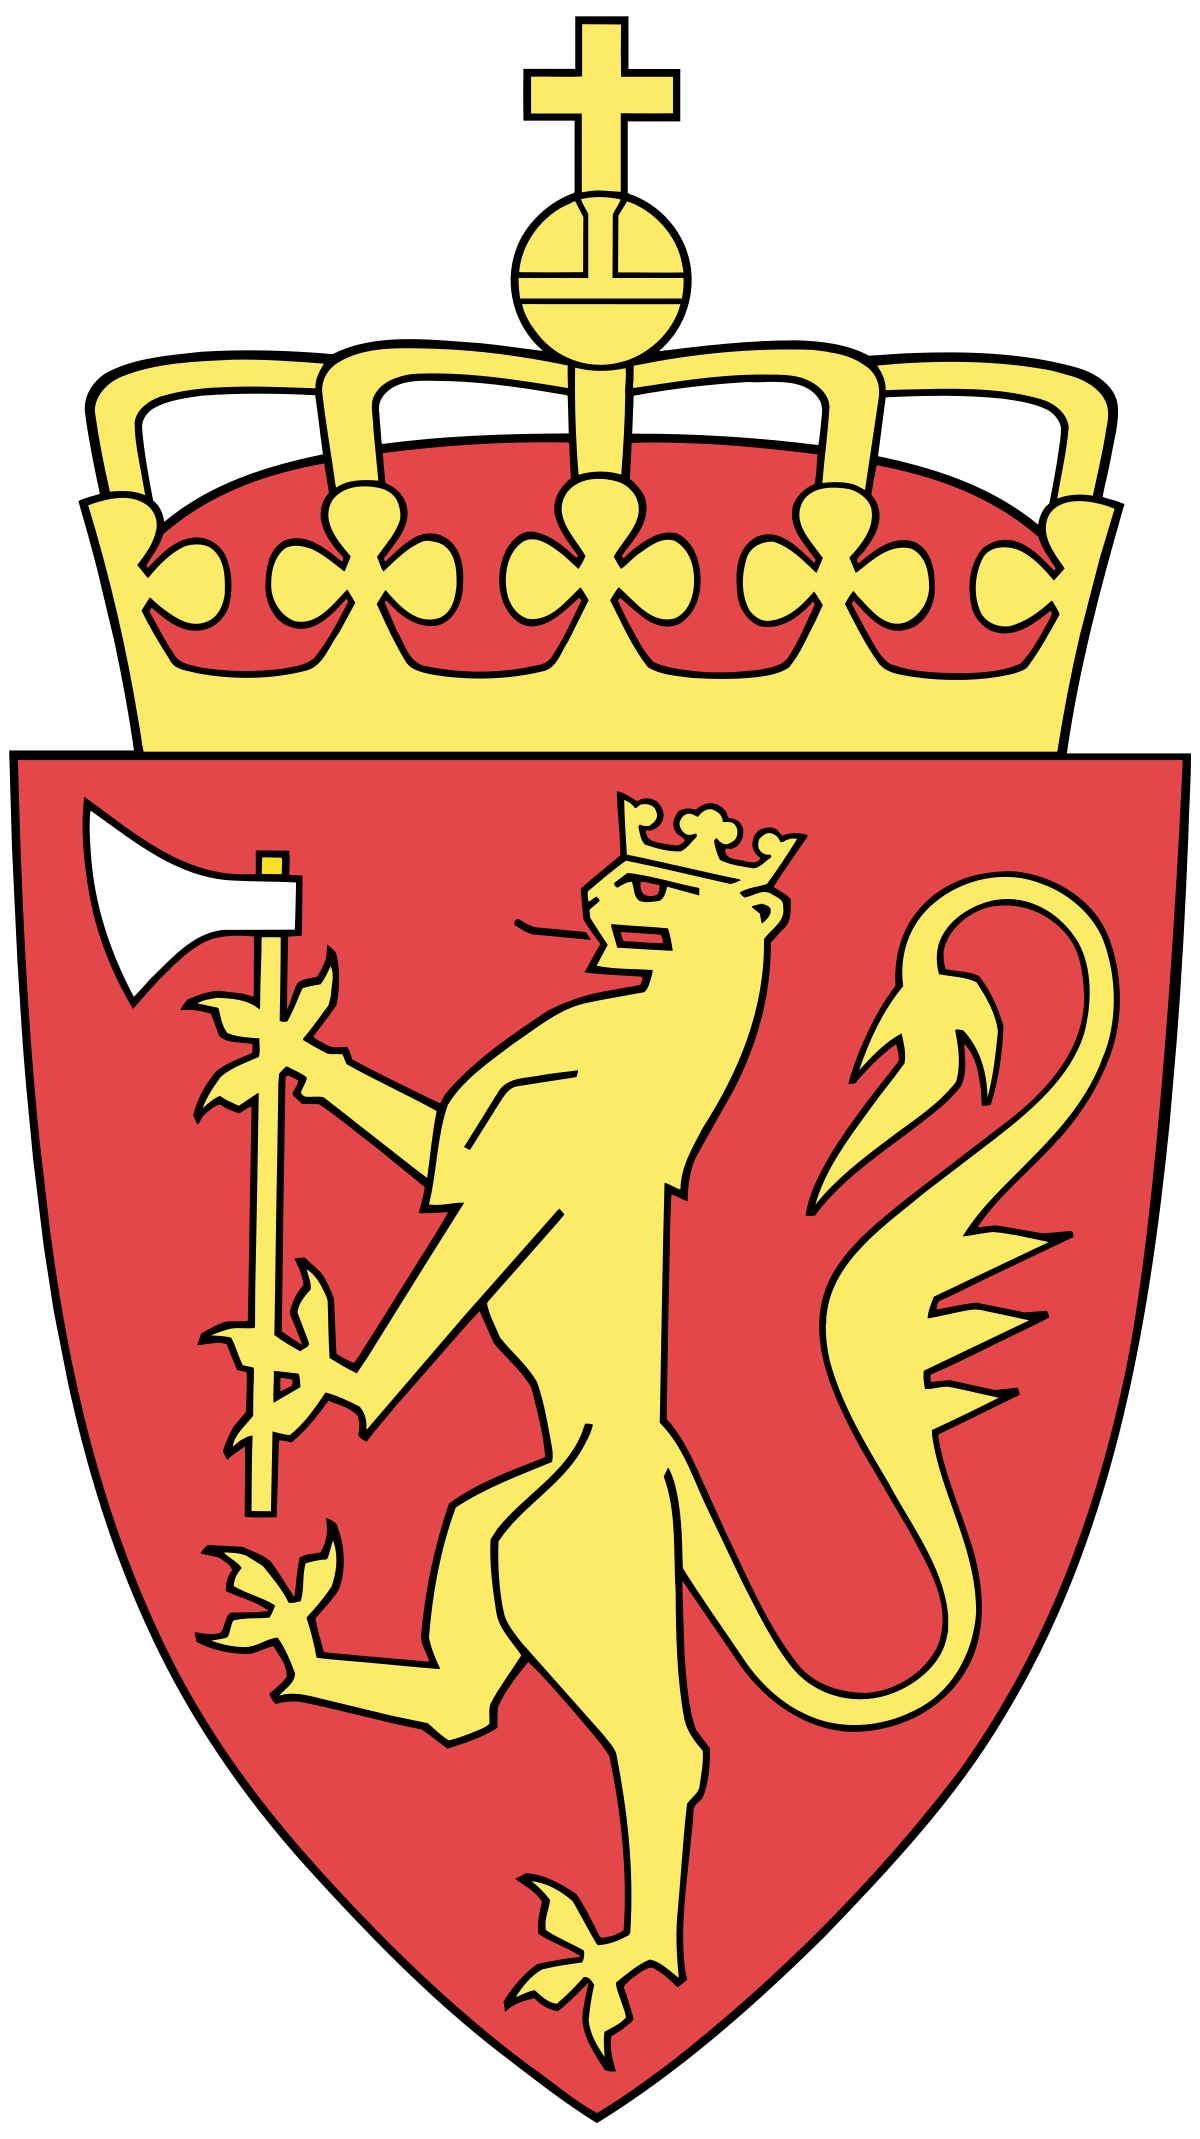 Coat of arms norway. Clipart shield viking